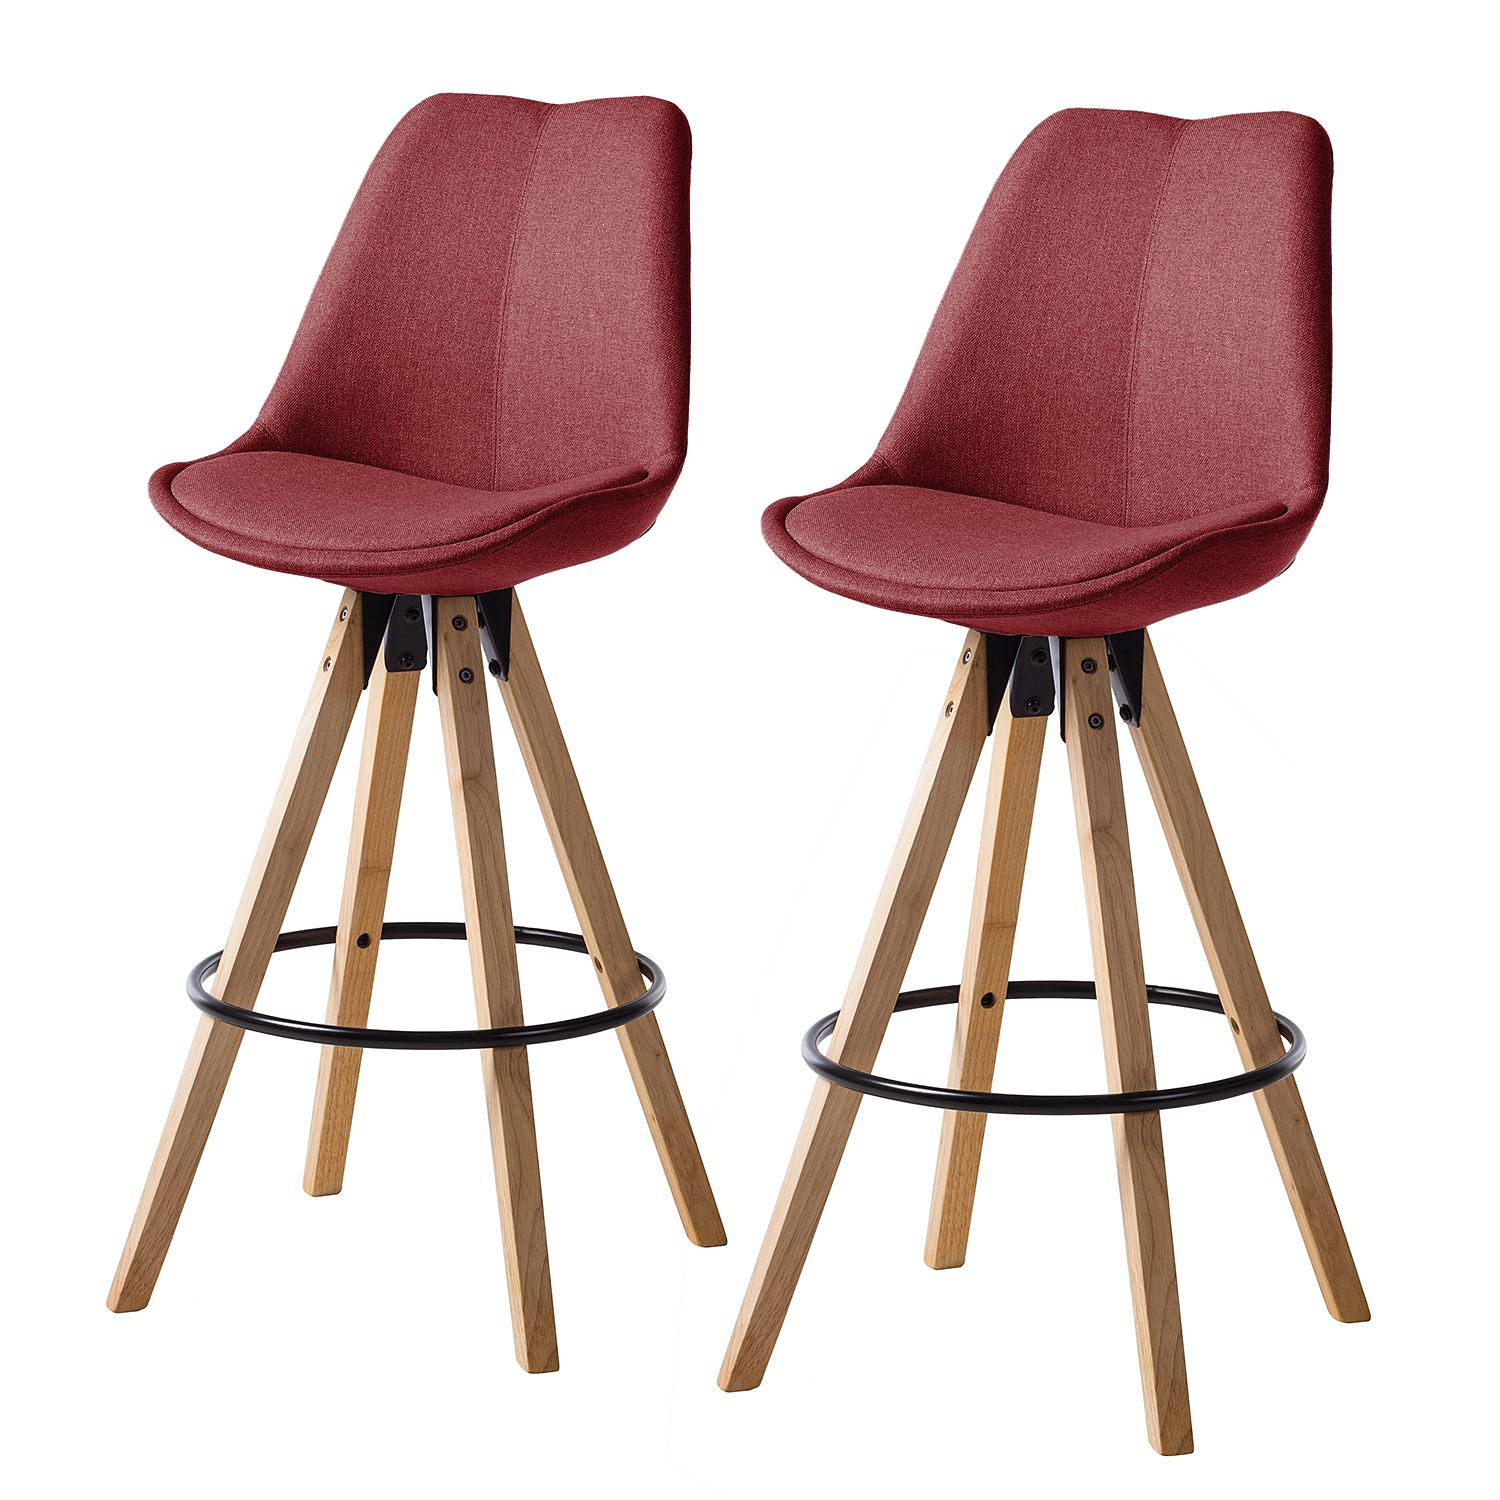 Barstoelen Aledas II (2-delige set) - geweven stof/massief rubberboomhout - Donkerrood, Morteens